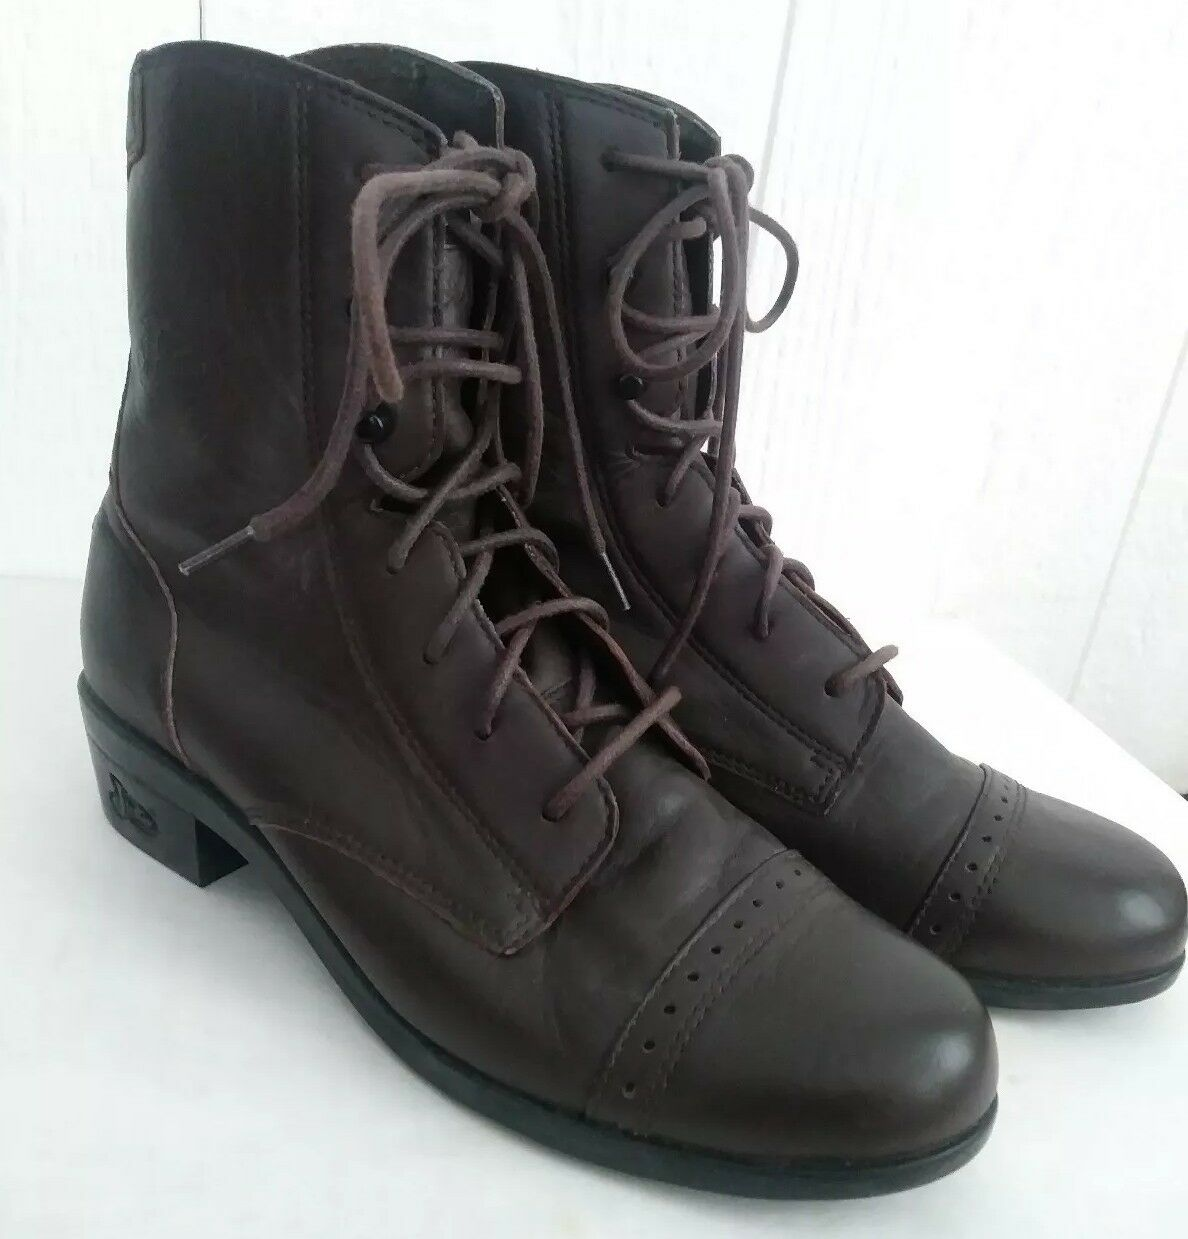 Justin Women's Boots L0623 Brown Leather Lace Up Cap Toe Granny 6.5 6 1 2 B Vtg